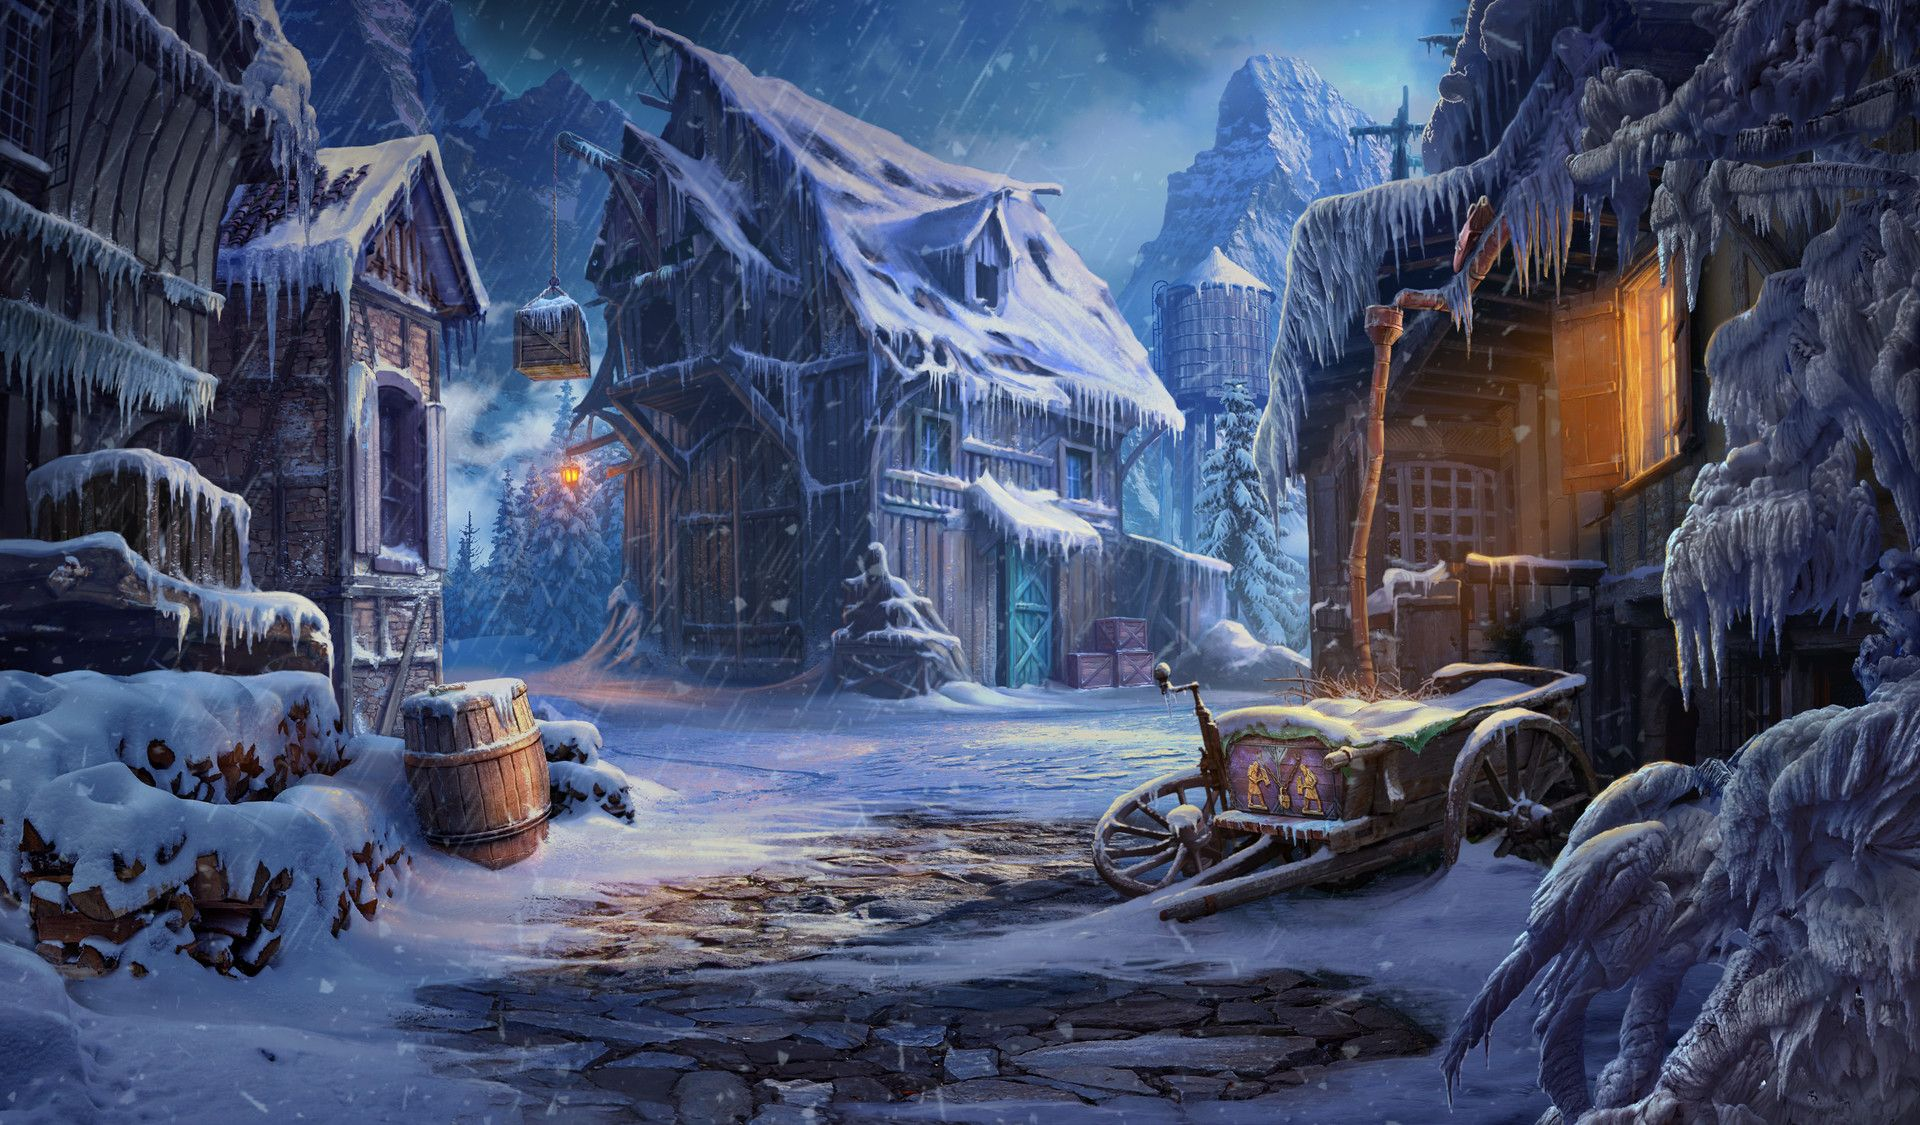 This Art Is Made For The Hopa Project League Of Light The Gatherer By Mariaglorum Studio 2016 Http W Fantasy Village Fantasy City Fantasy Art Landscapes